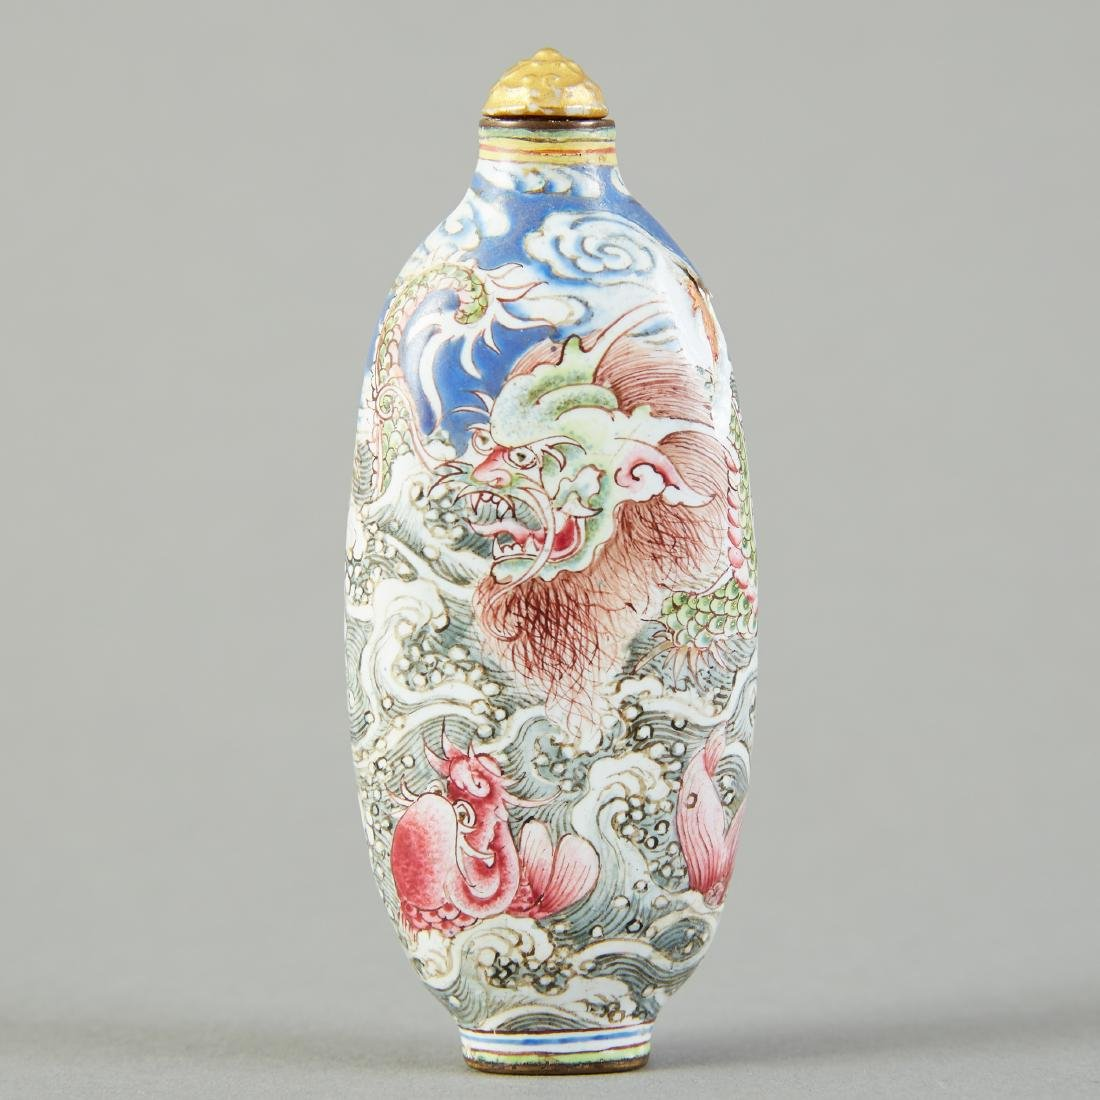 19th C. Chinese Qing Enameled Snuff Bottle Leaping Carp - 3